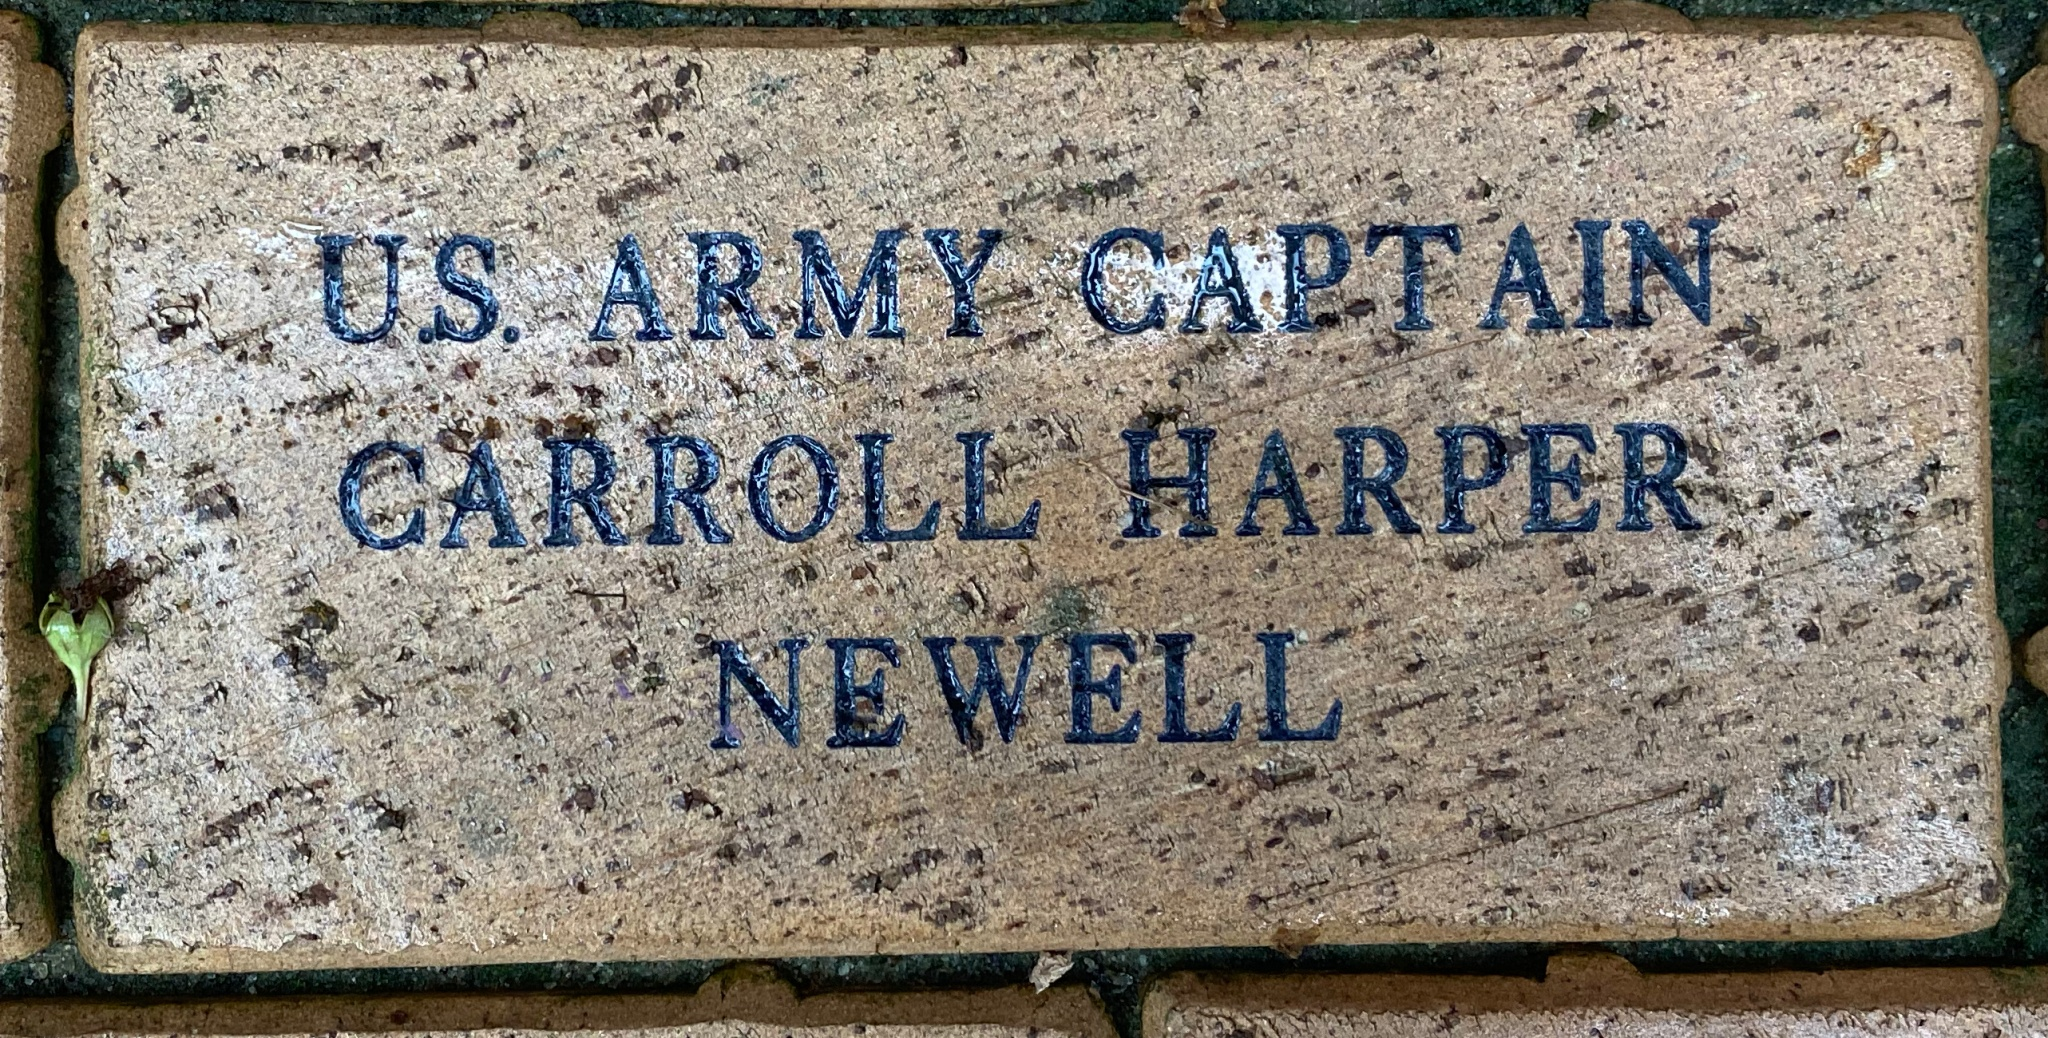 US ARMY CAPTAIN CARROLL HARPER NEWELL